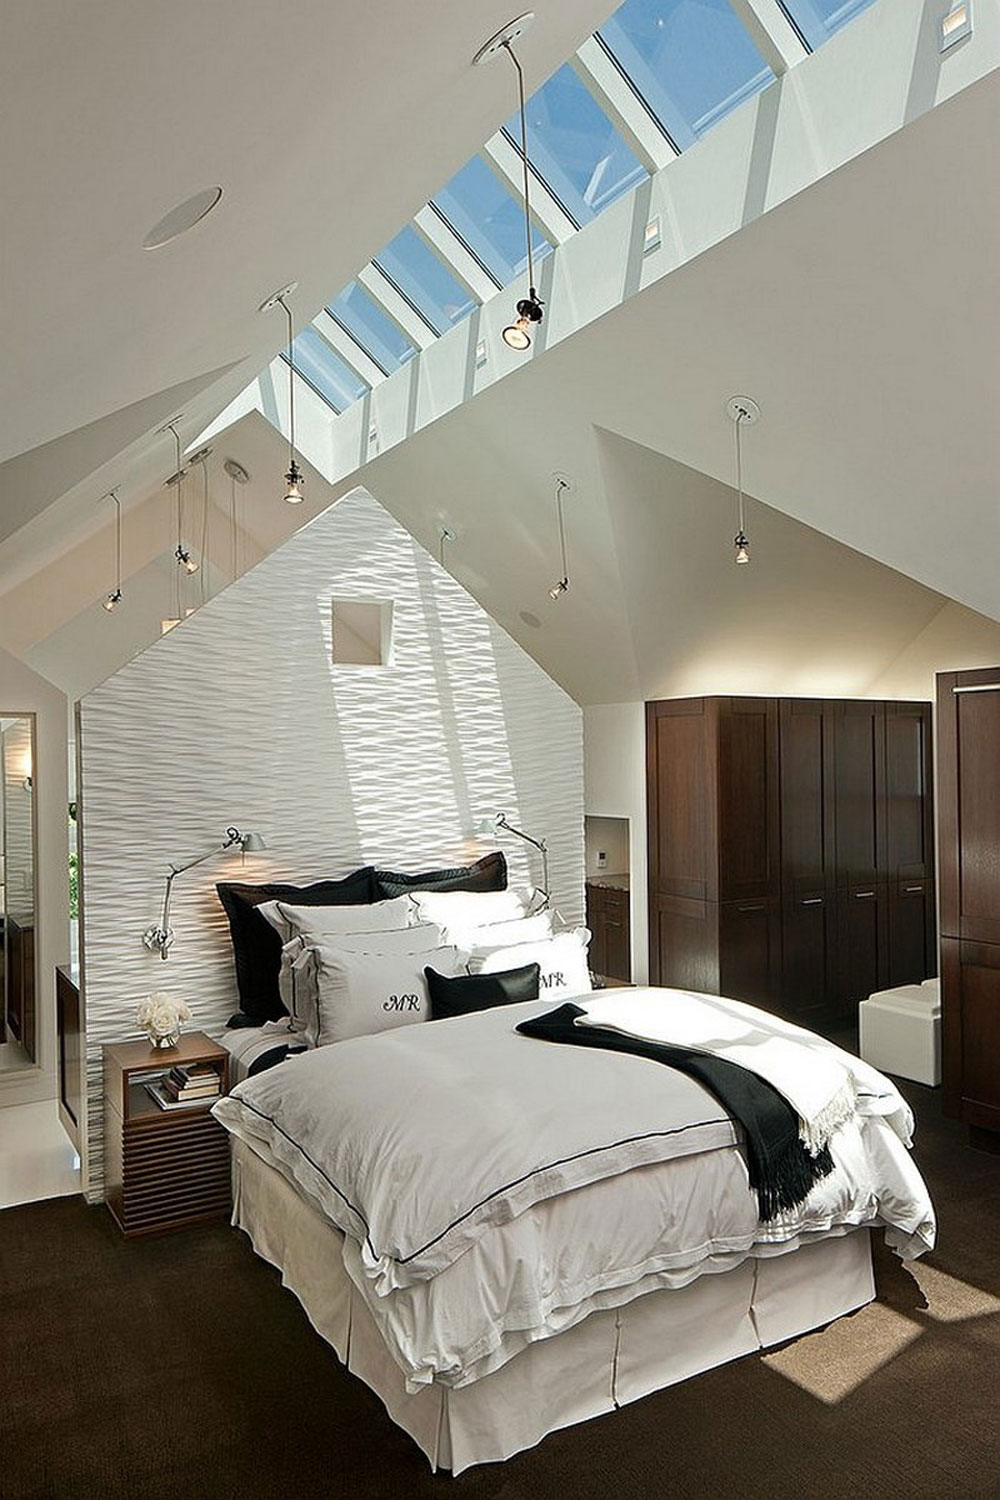 Skylight-home-design-ideas-for-a-better-life-1 Skylight-home-design-ideas for a better life